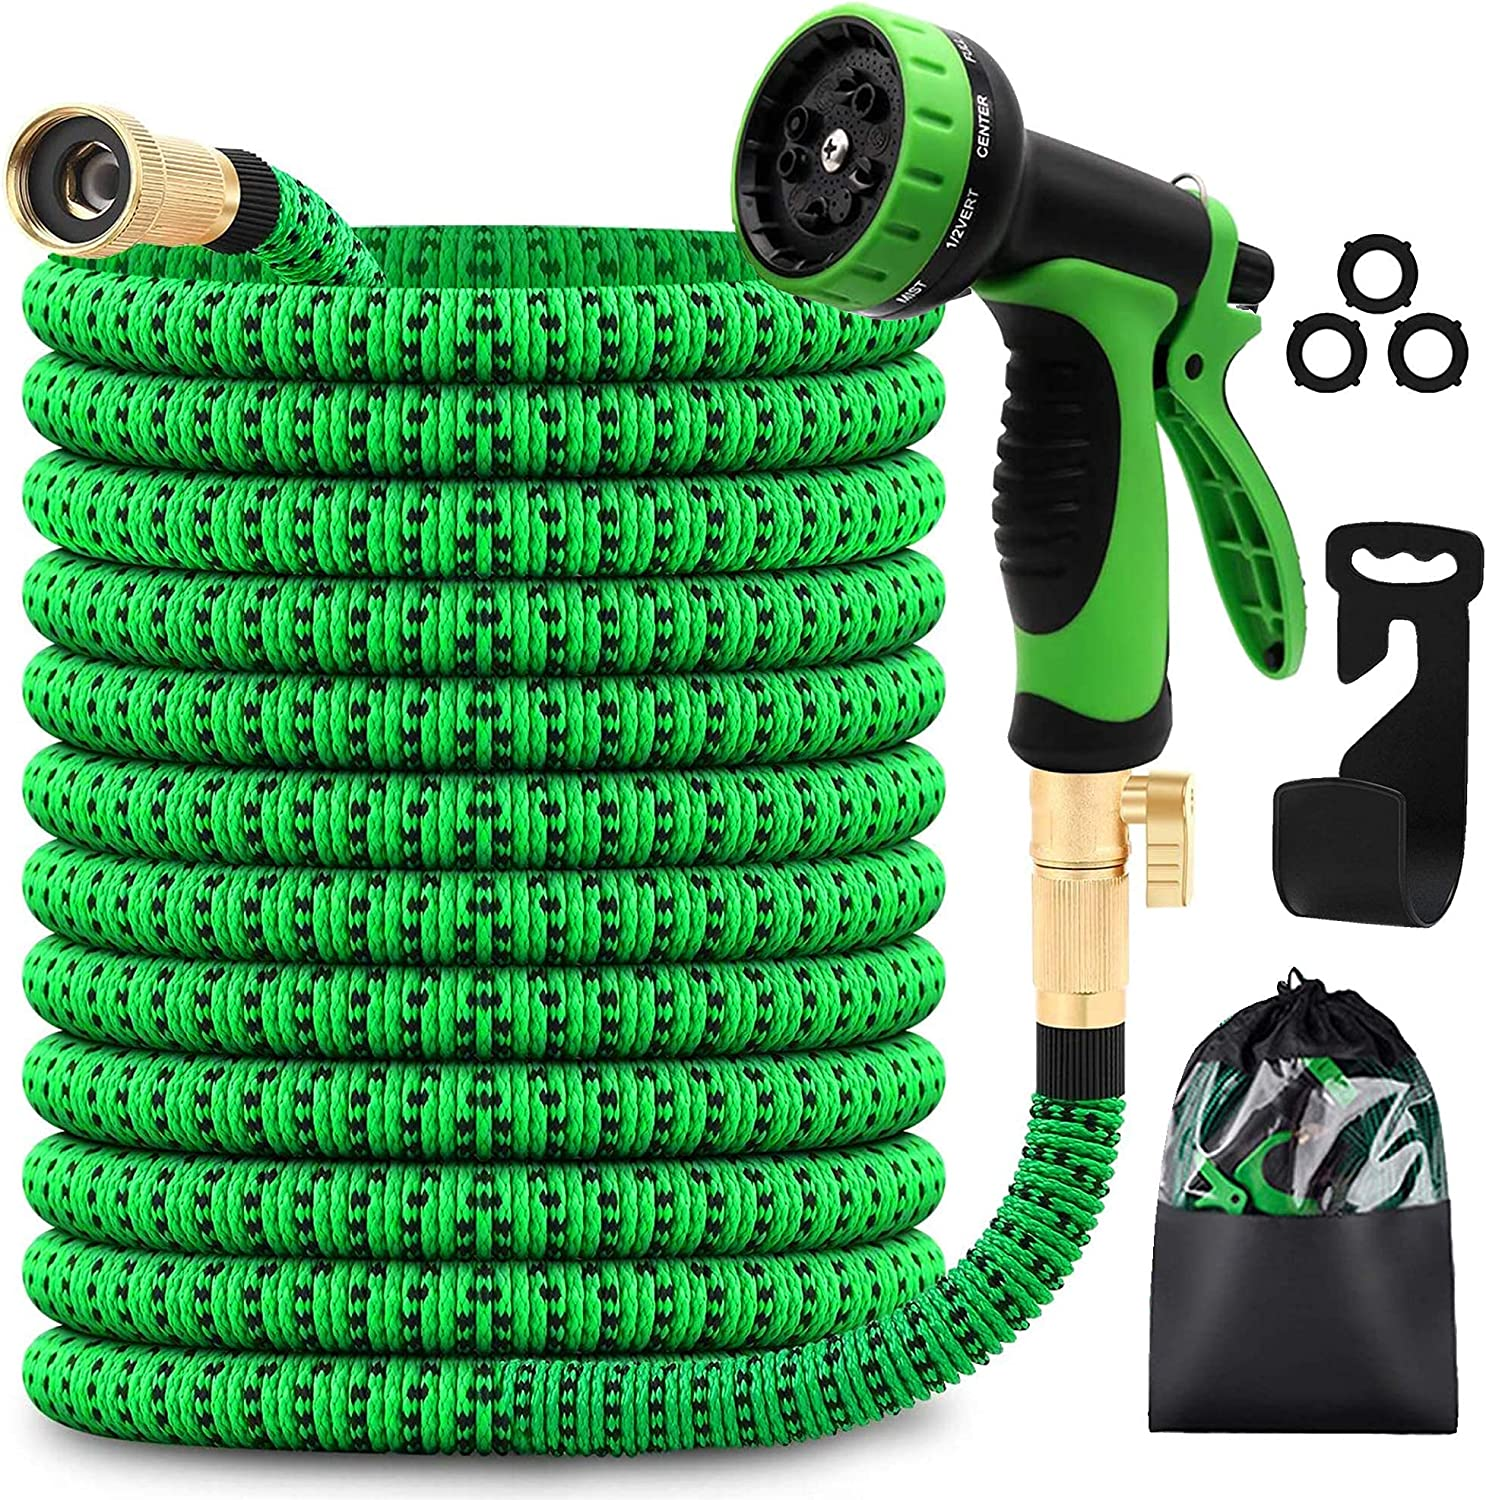 MYDAYS Garden Hose with 8 Function Nozzle, Lightweight Expandable Garden Hose, No-Kink Flexibility, 3/4 Inch Solid Brass Fittings and Double Latex Core (Green, 100FT)